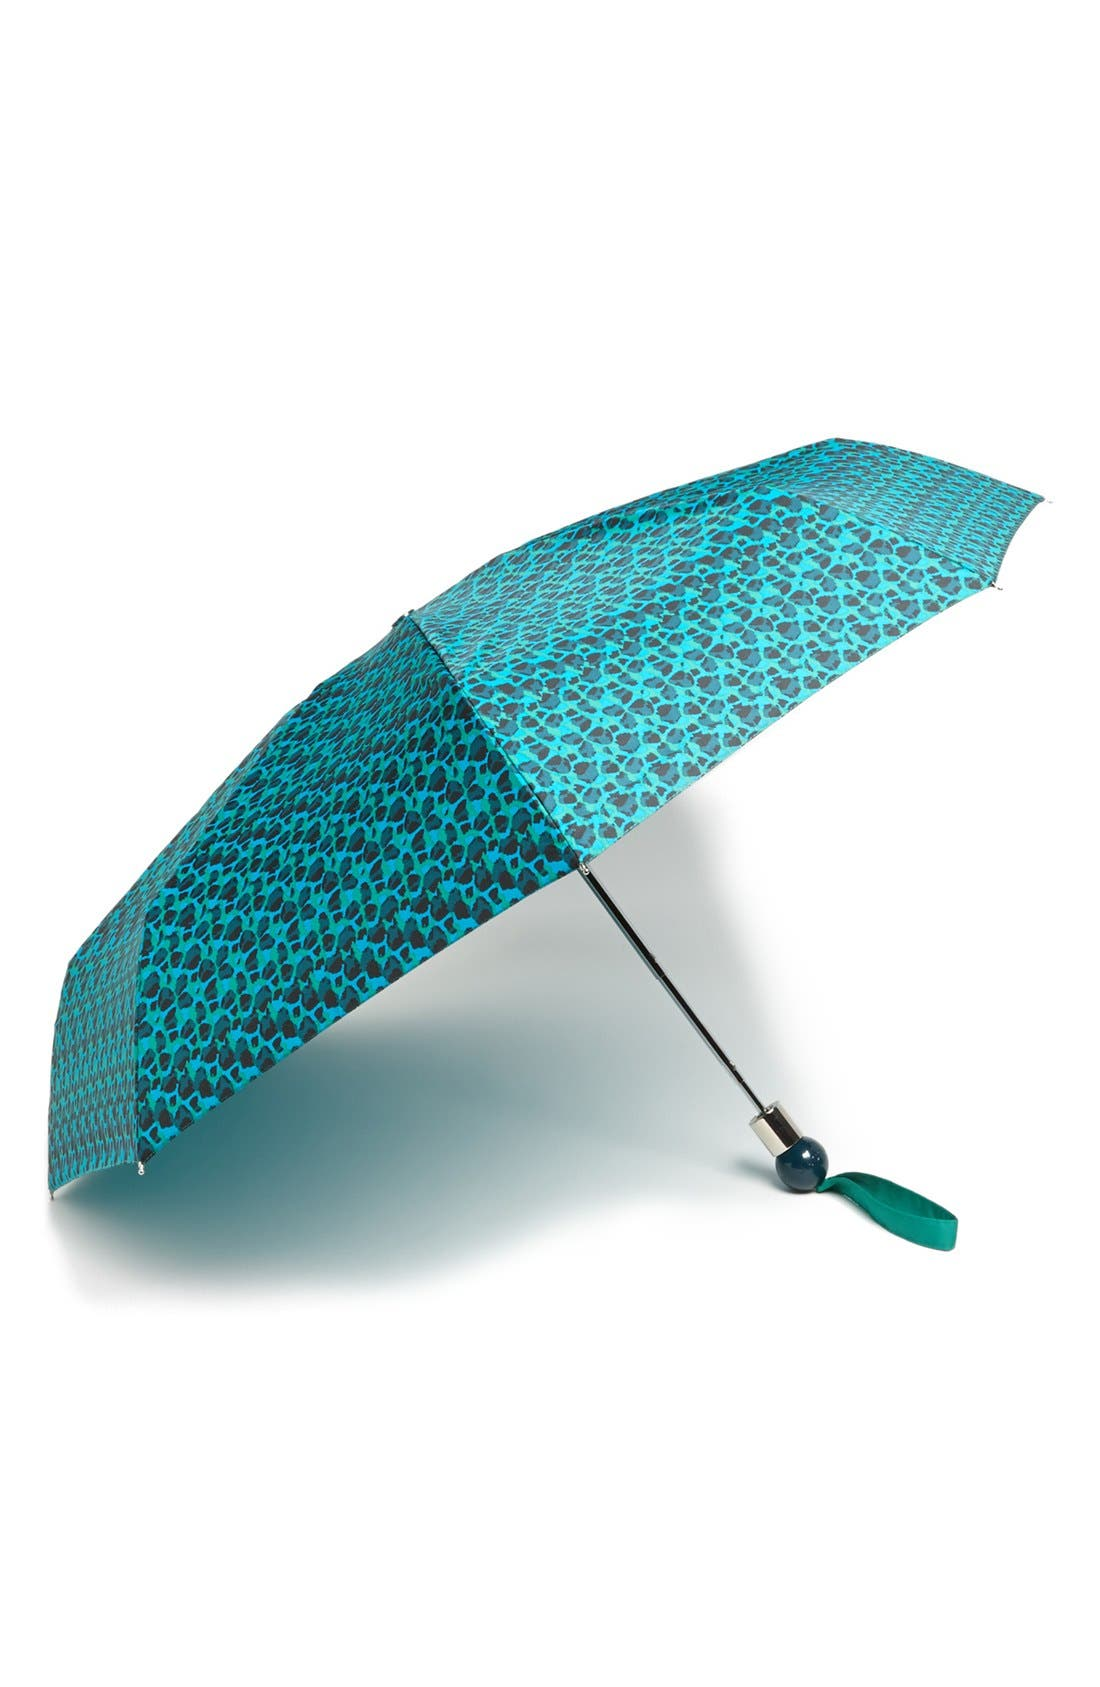 Alternate Image 1 Selected - MARC BY MARC JACOBS 'Isa' Umbrella